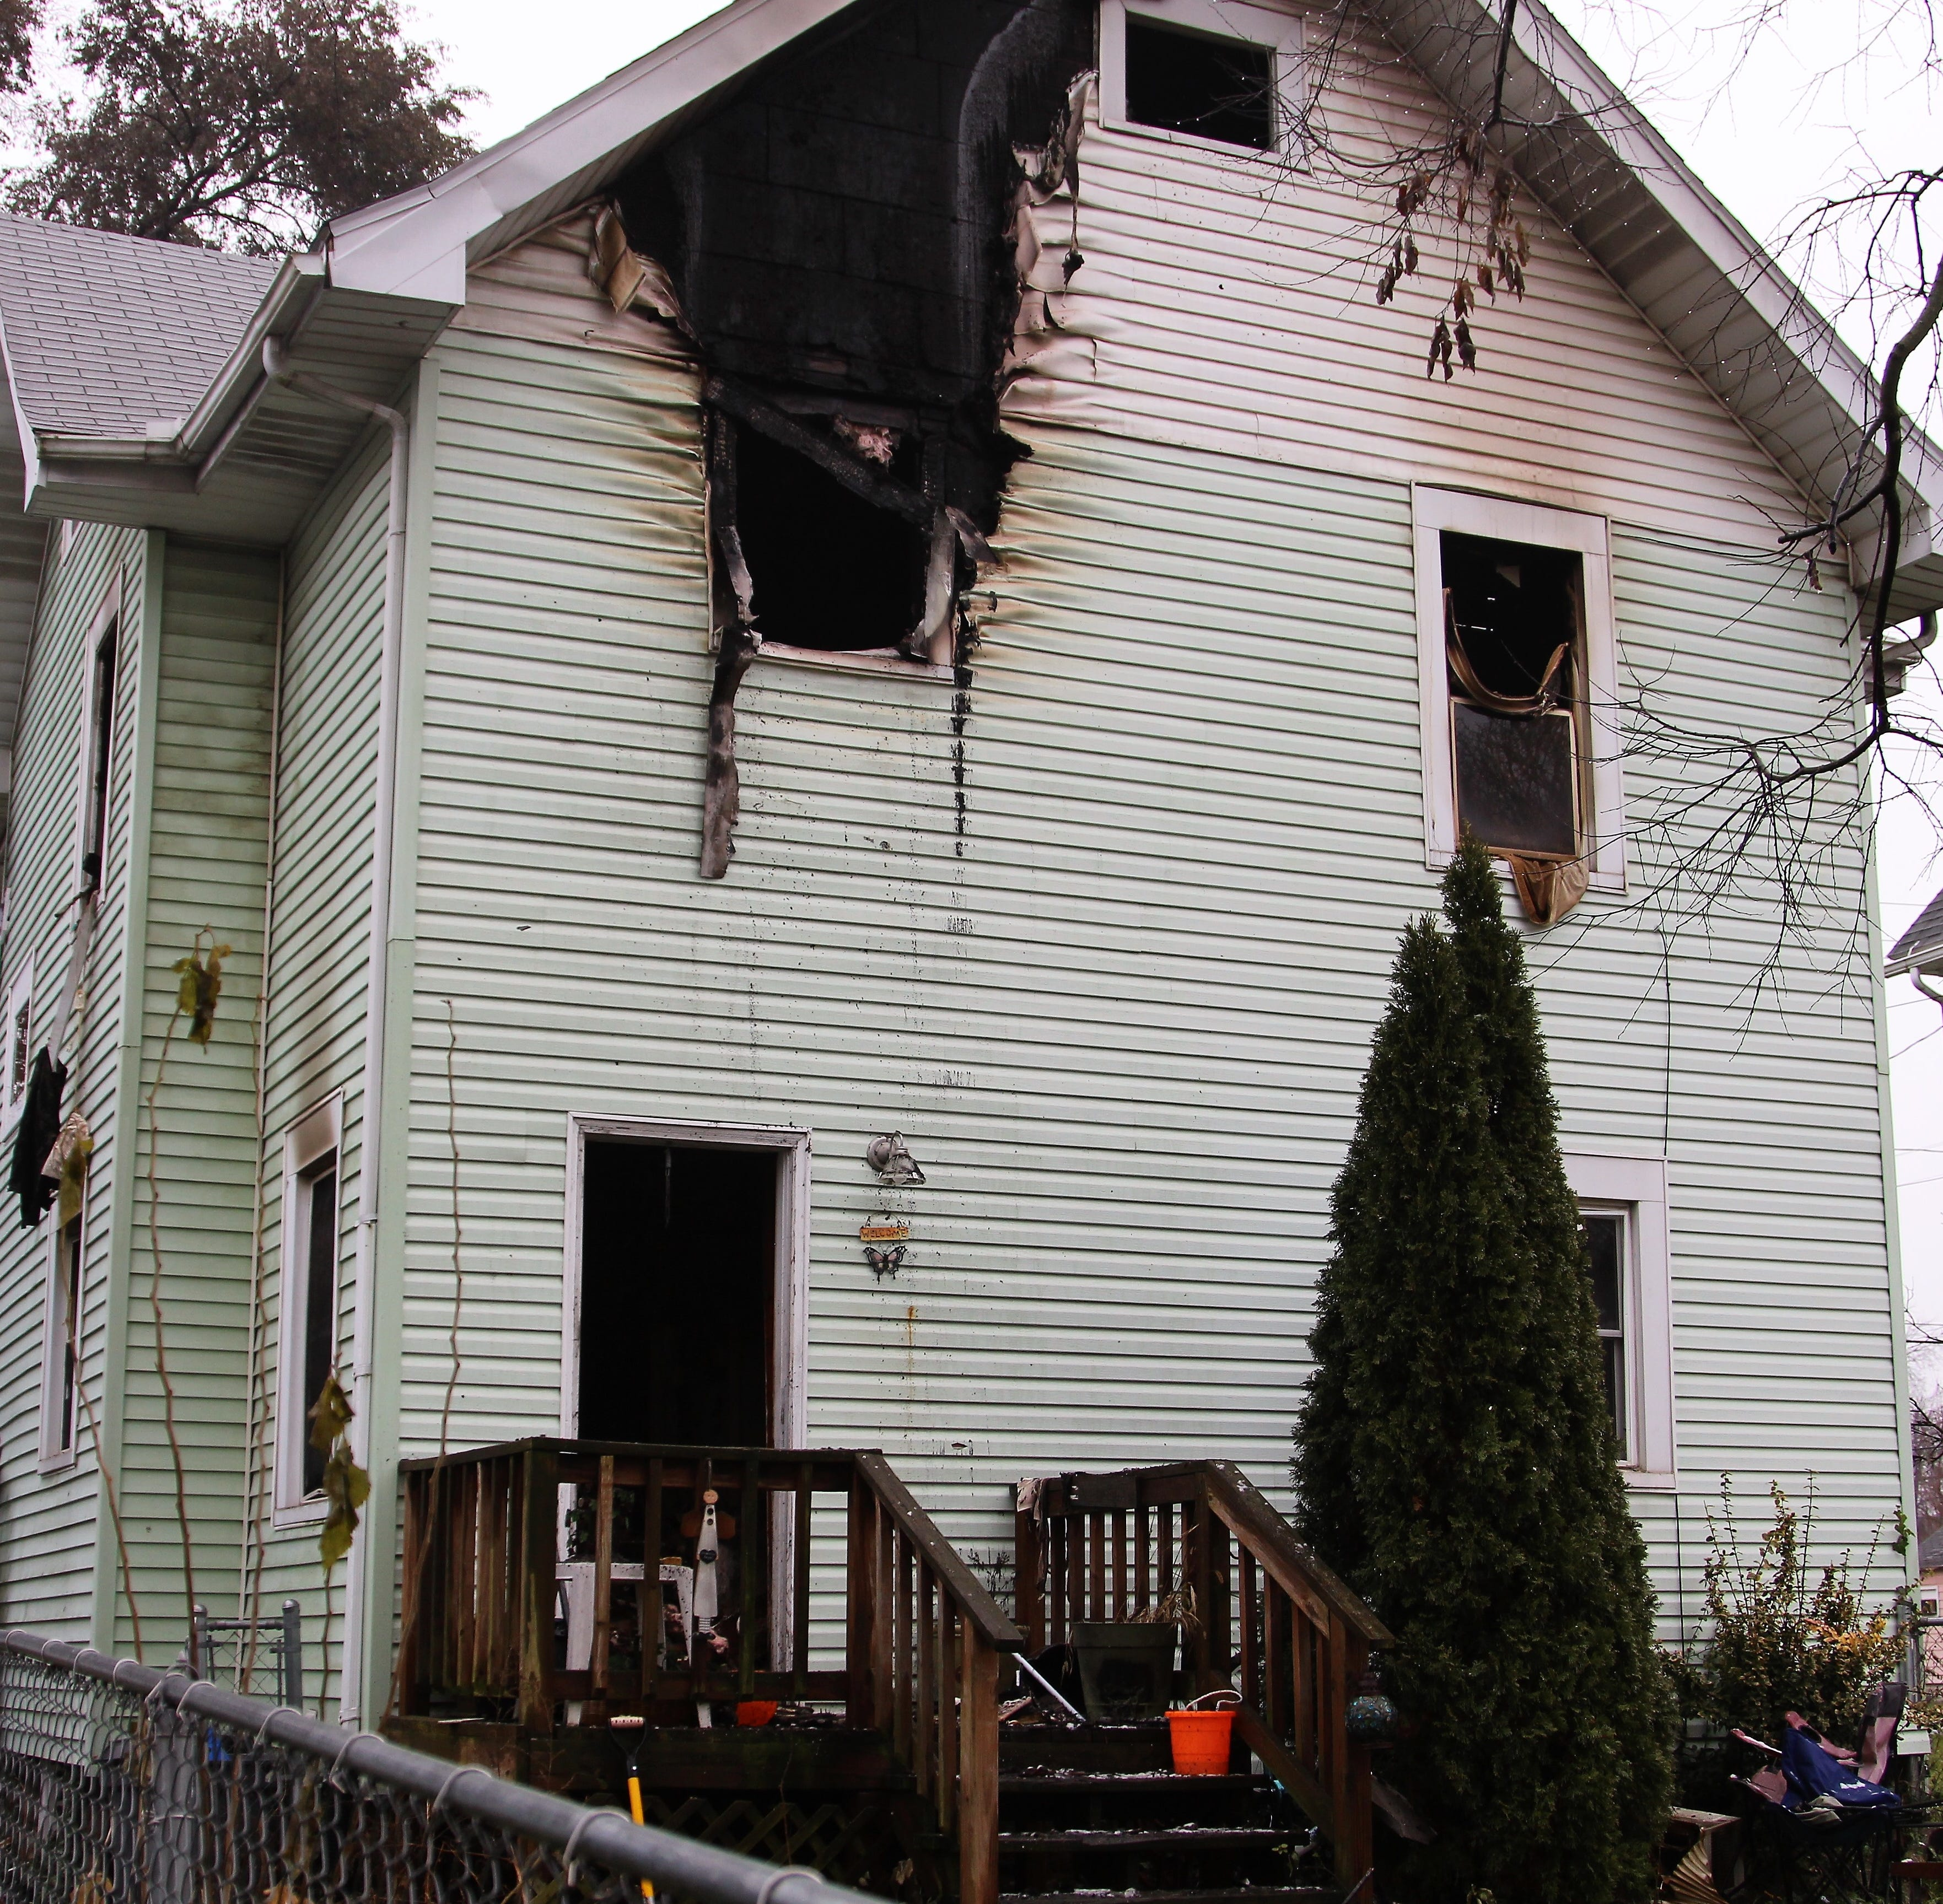 Fire displaces four from Silver Street home